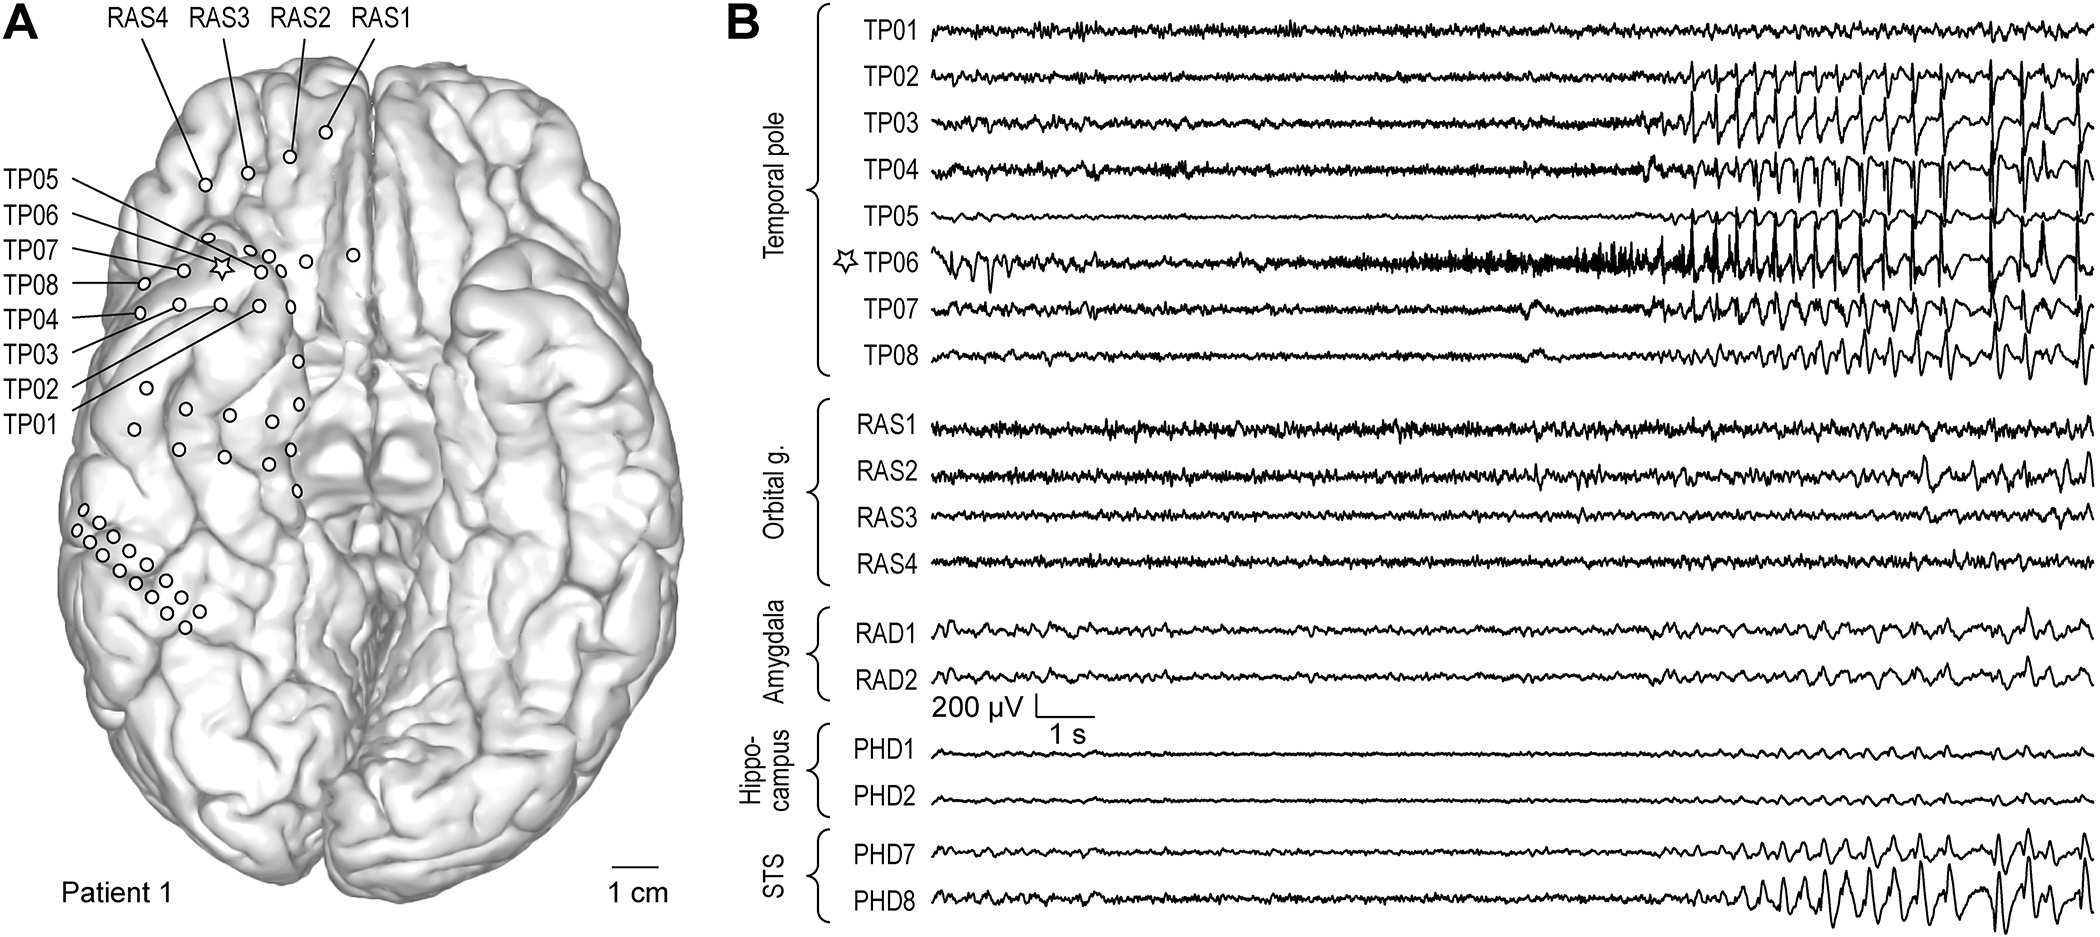 Role of the temporal pole in temporal lobe epilepsy seizure